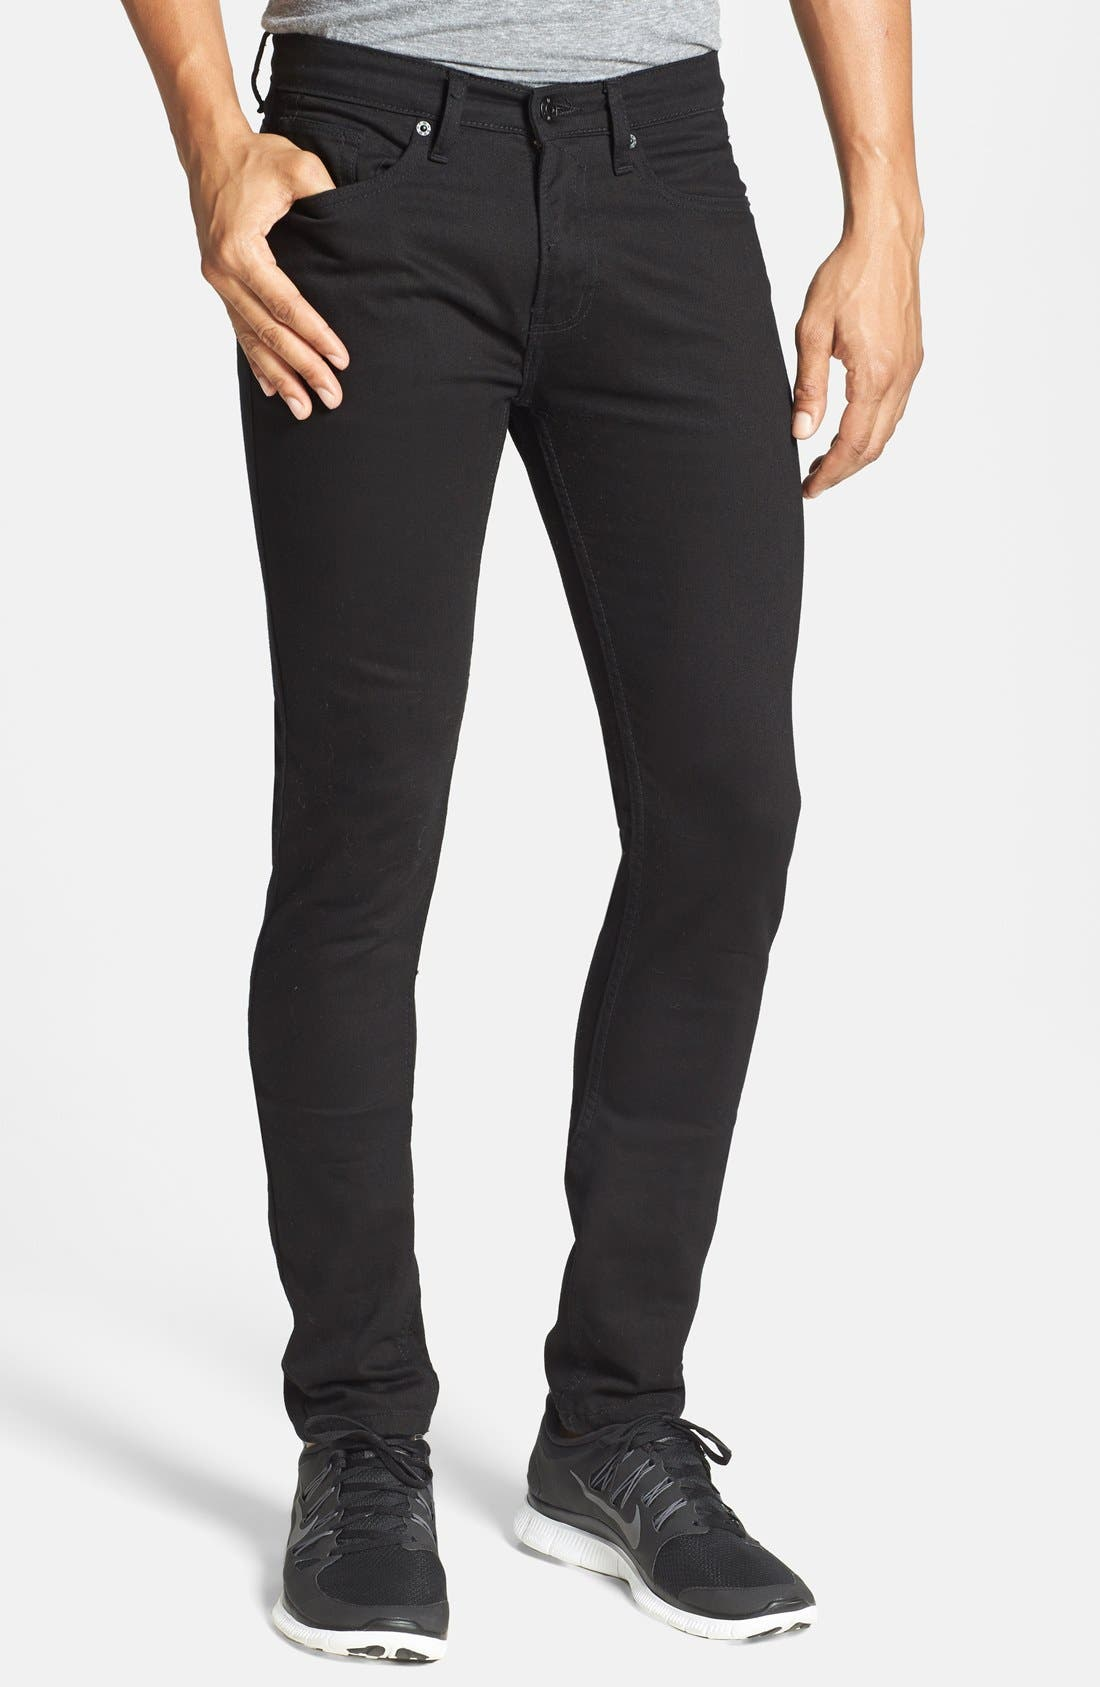 TOPMAN Stretch Skinny Fit Jeans, Main, color, 001